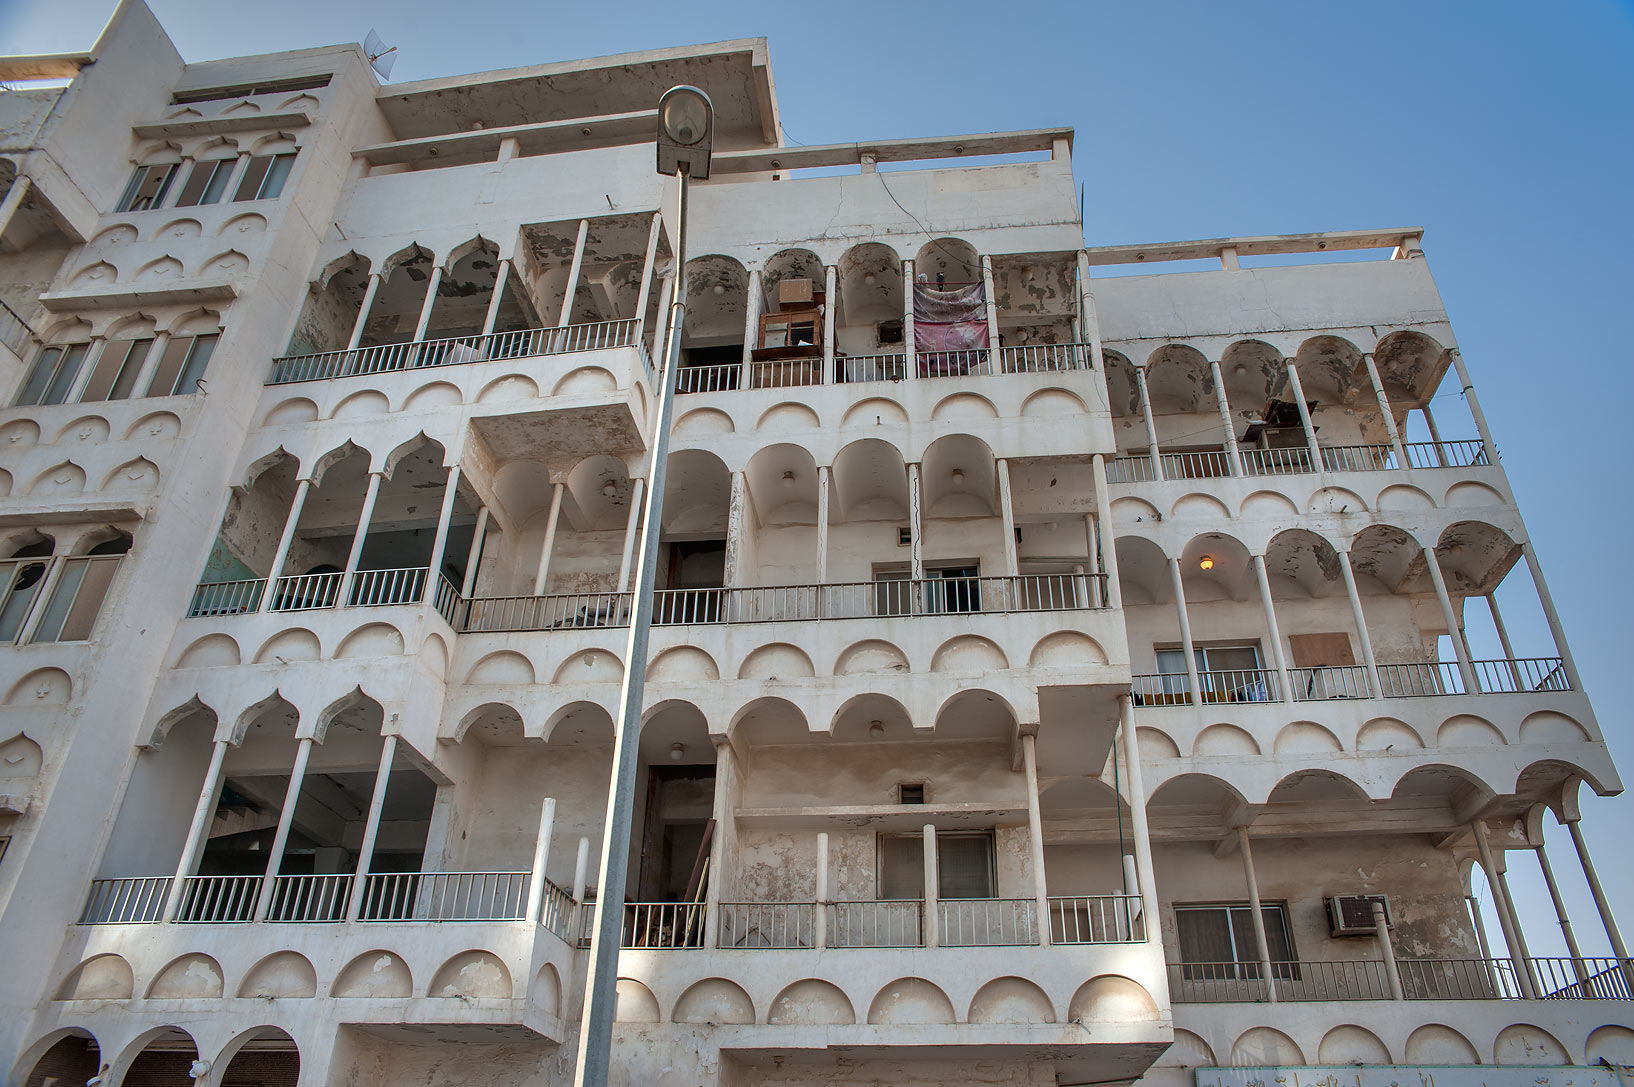 Arched balconies near 55 Al Arab St. in Najma area. Doha, Qatar